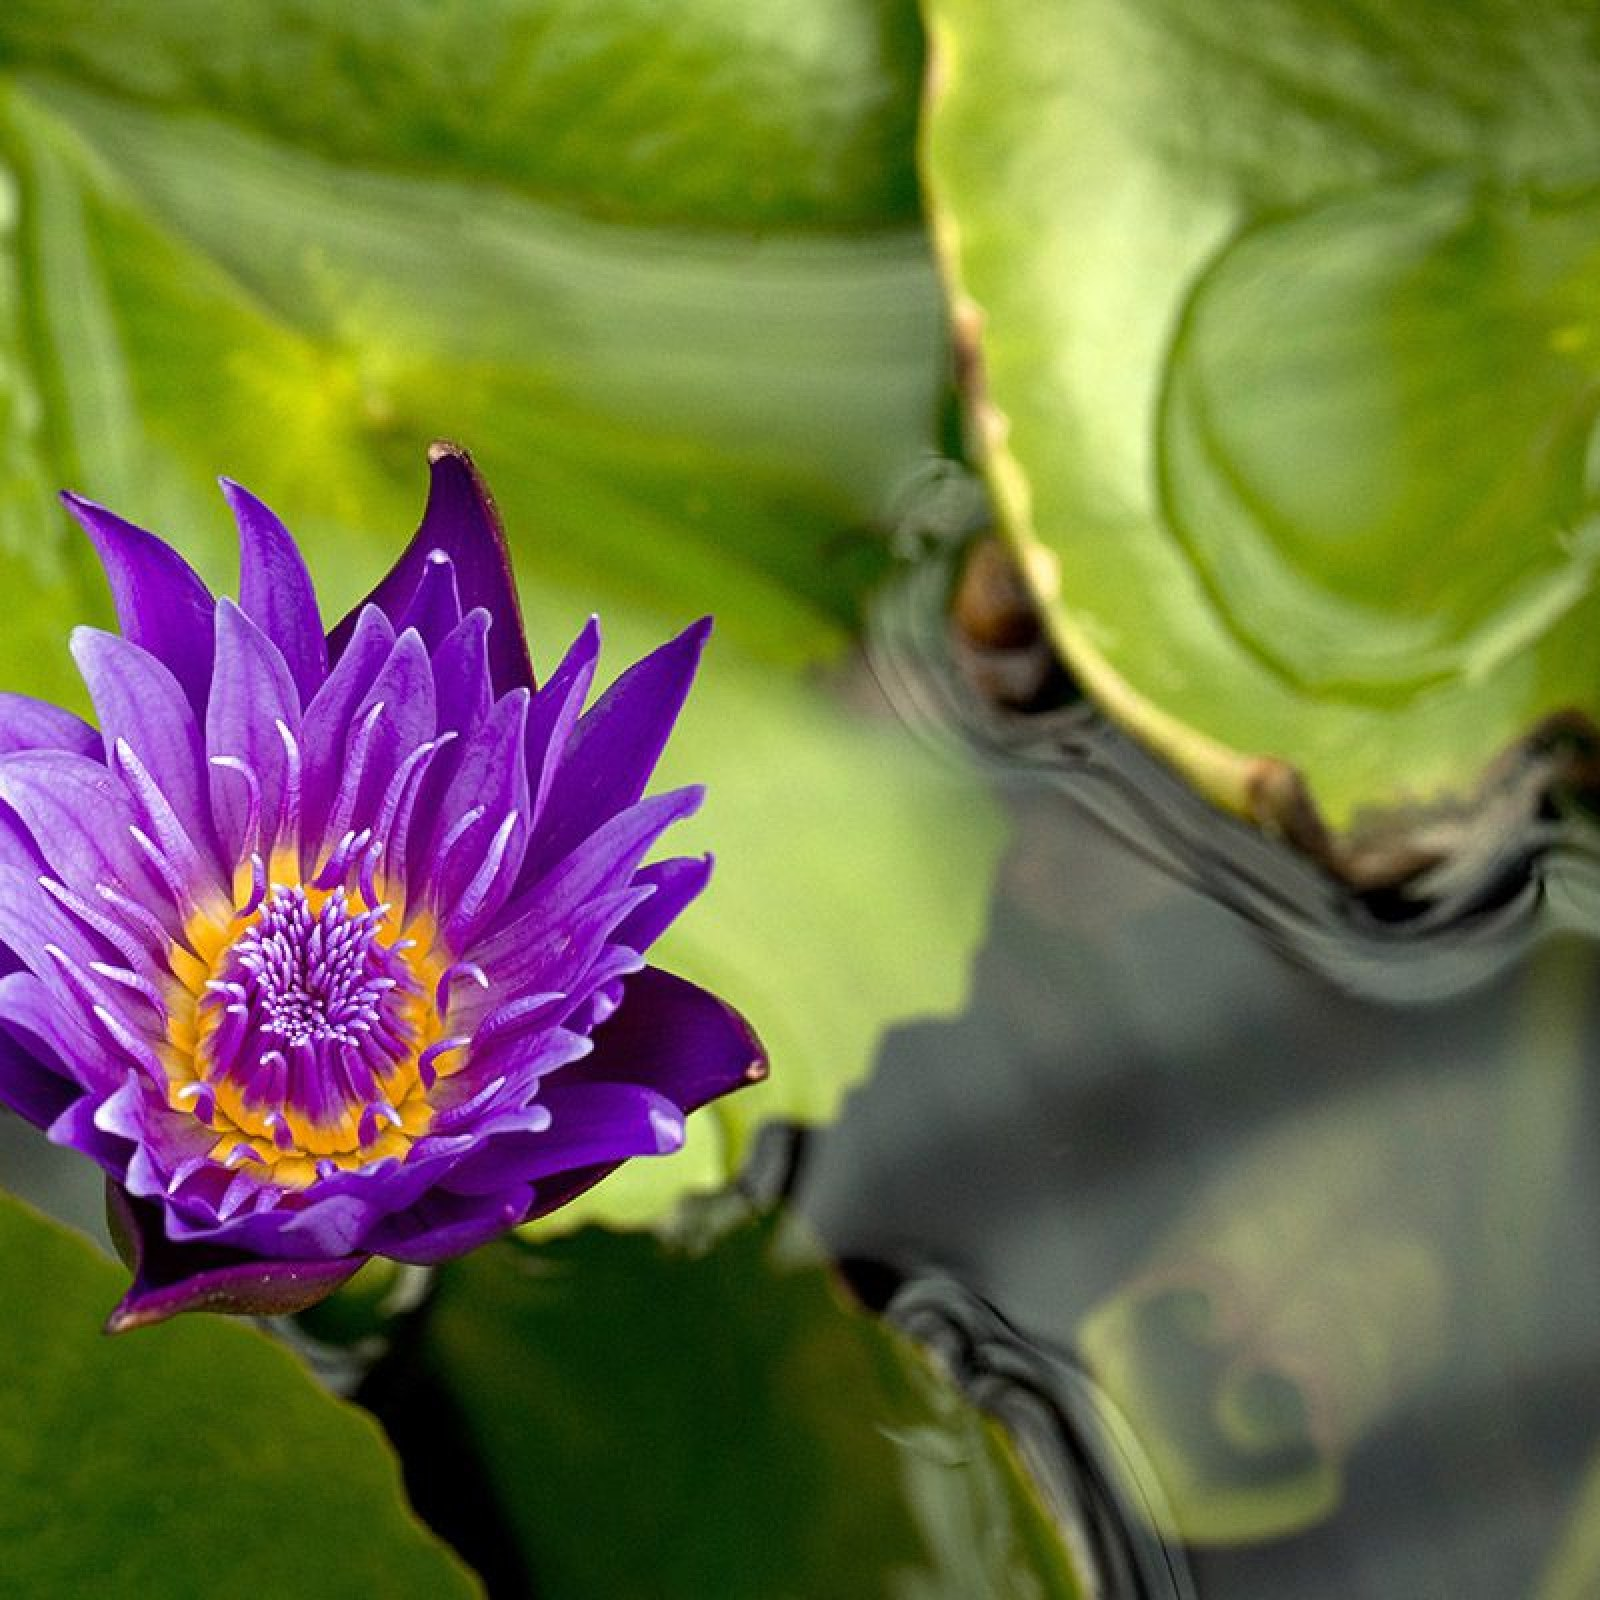 Water Lily Seeds Are The Hottest New Superfood Snack